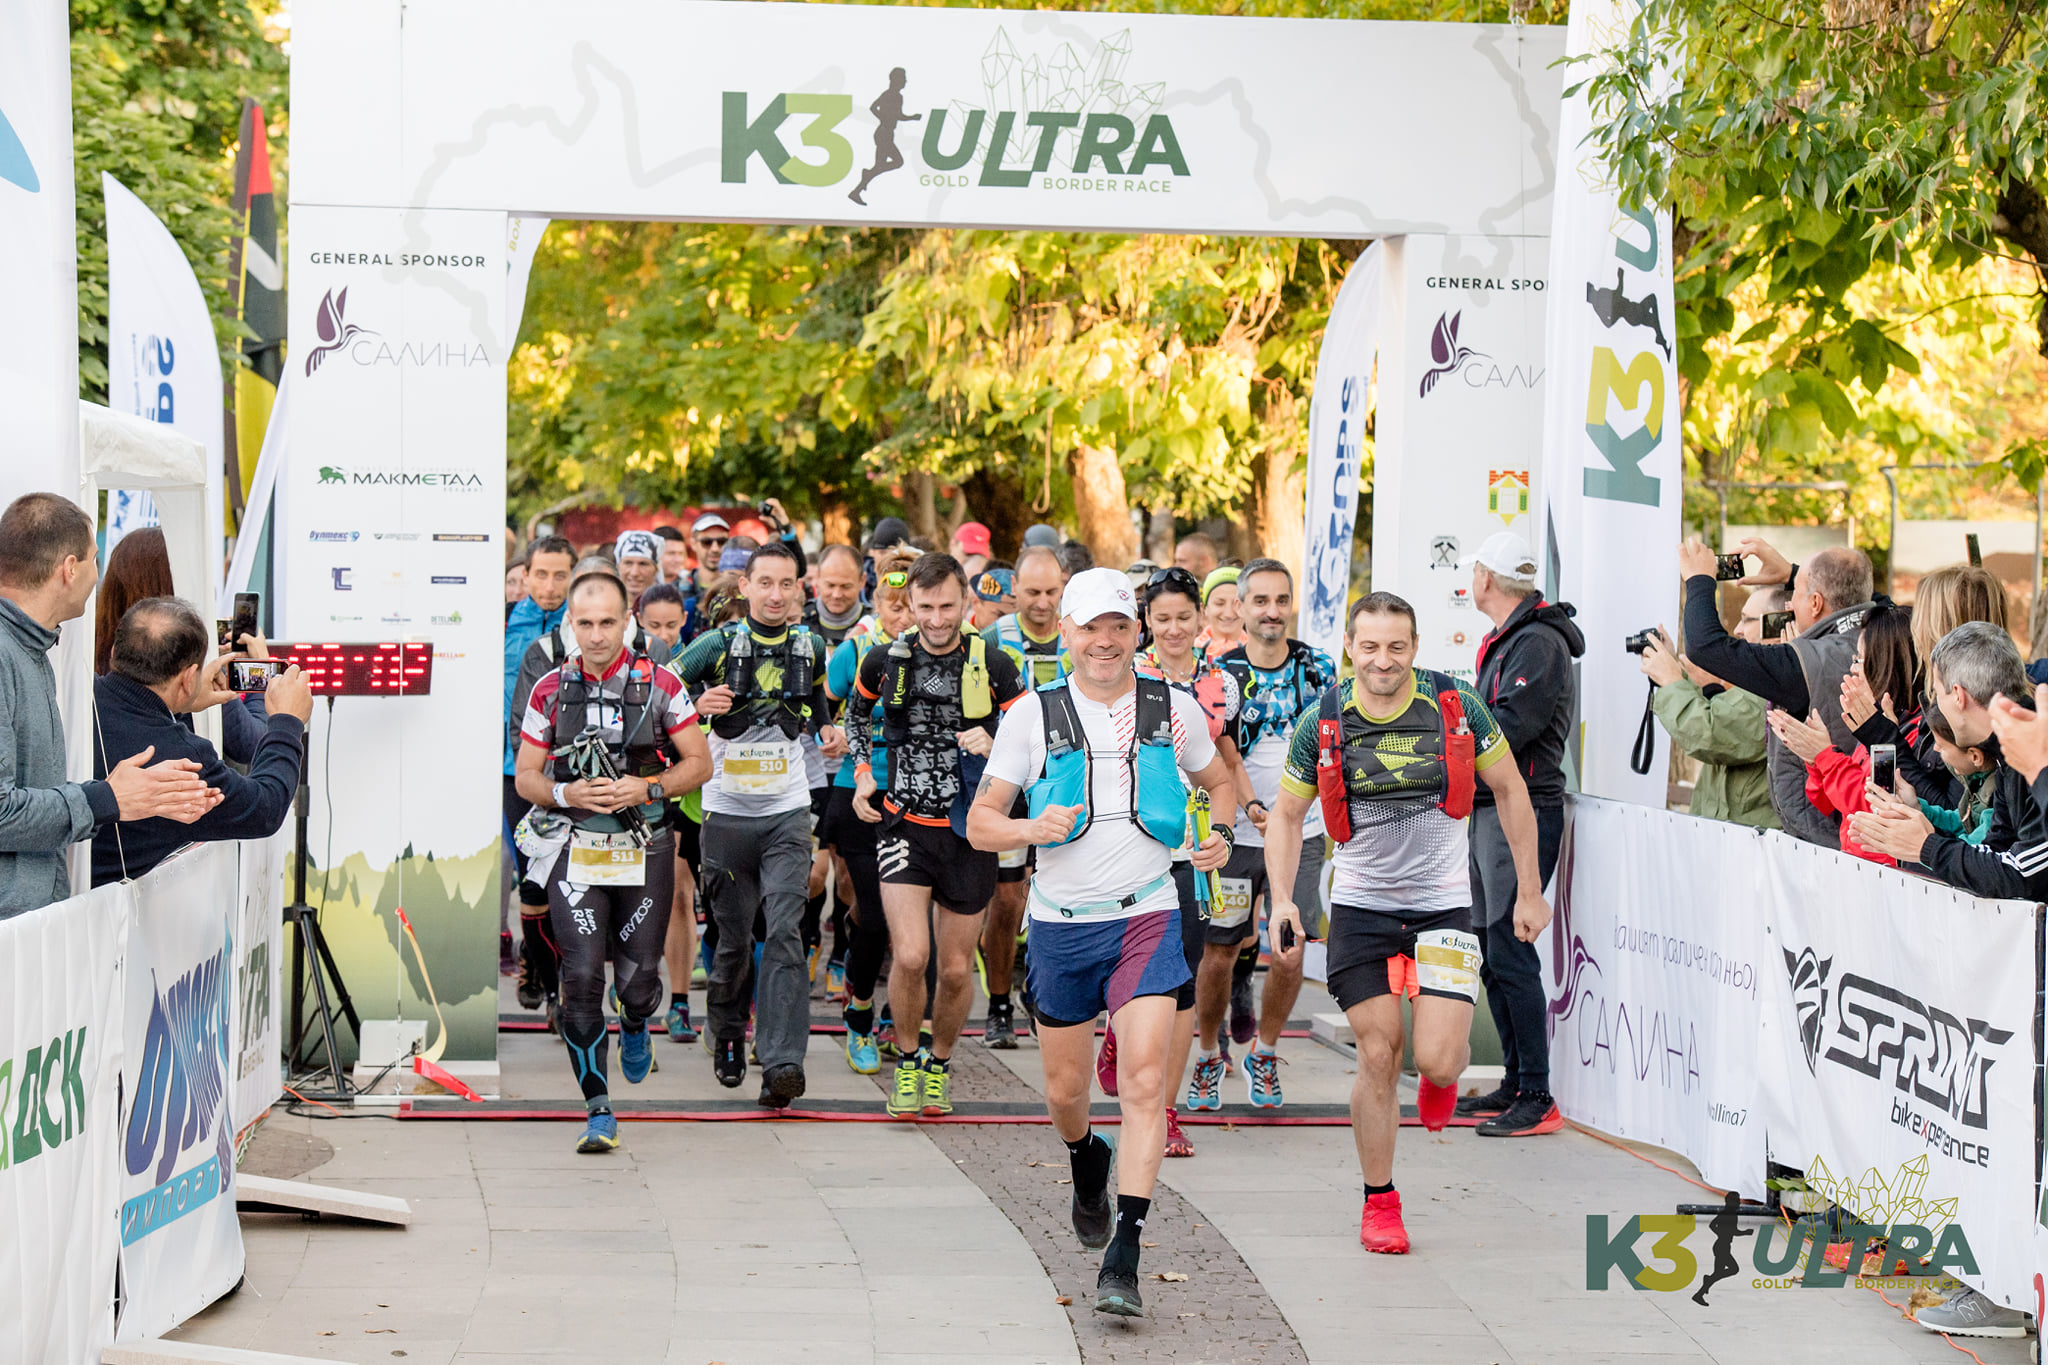 More than 500 runners from 13 countries registered for K3 ULTRA